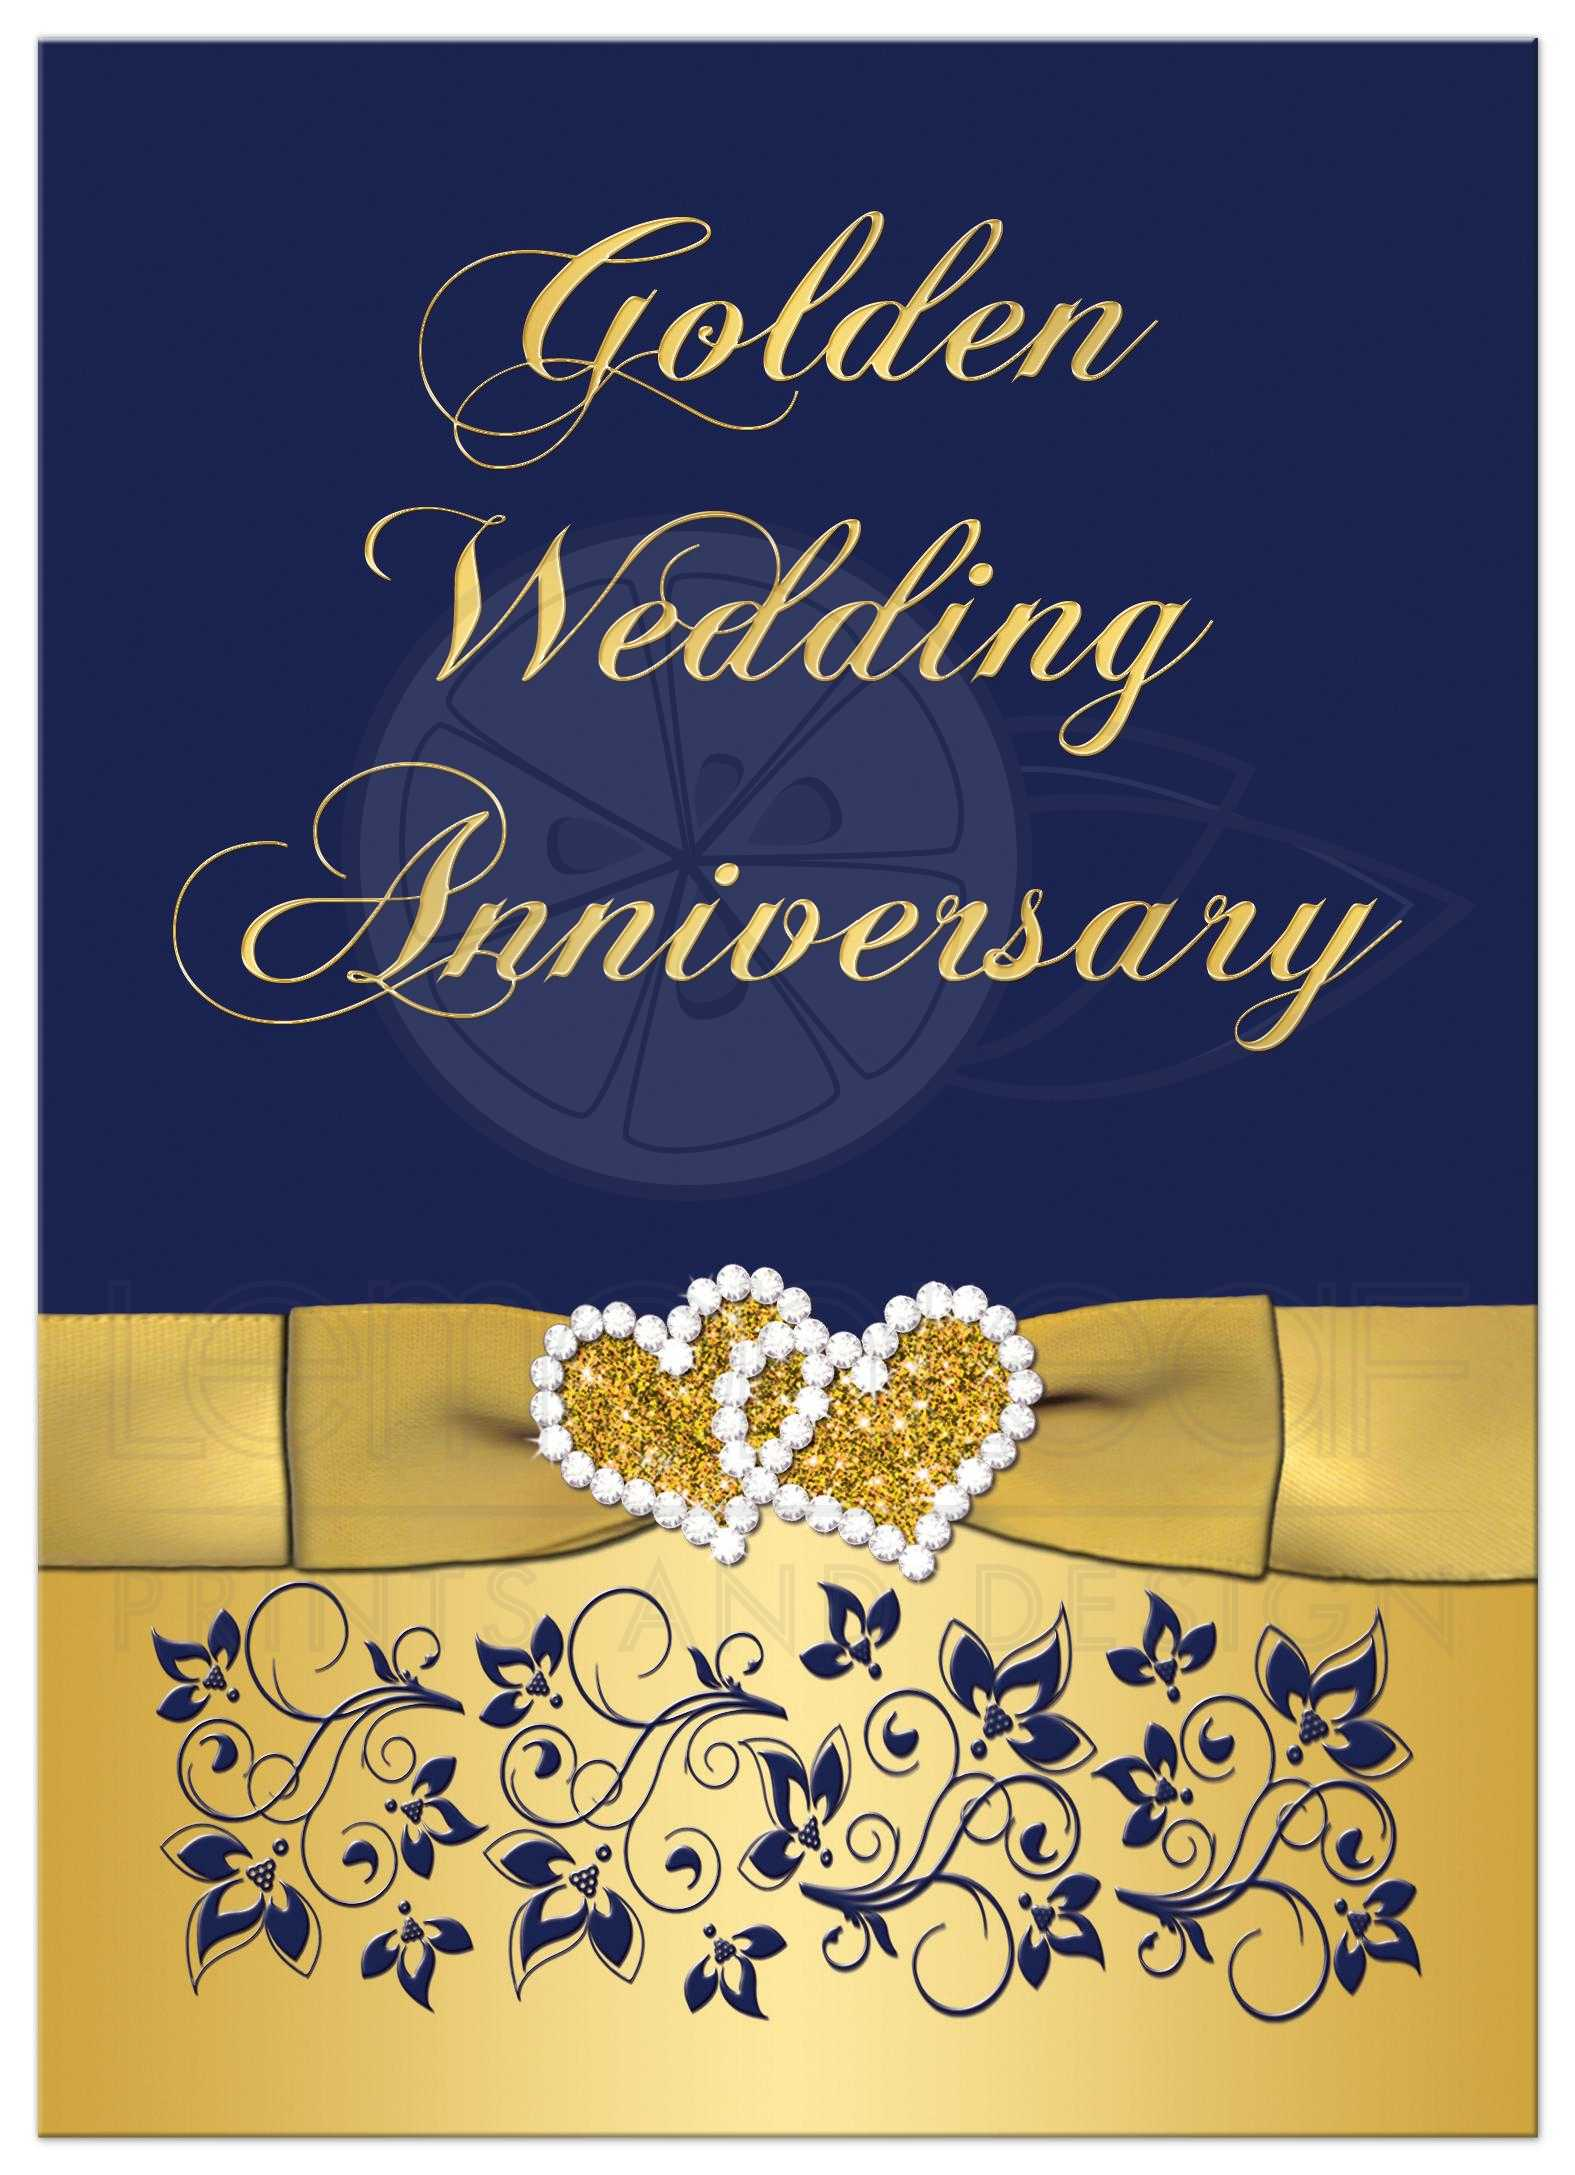 50th Wedding Anniversary Invitation In Navy And Gold Floral With Joined  Hearts ...